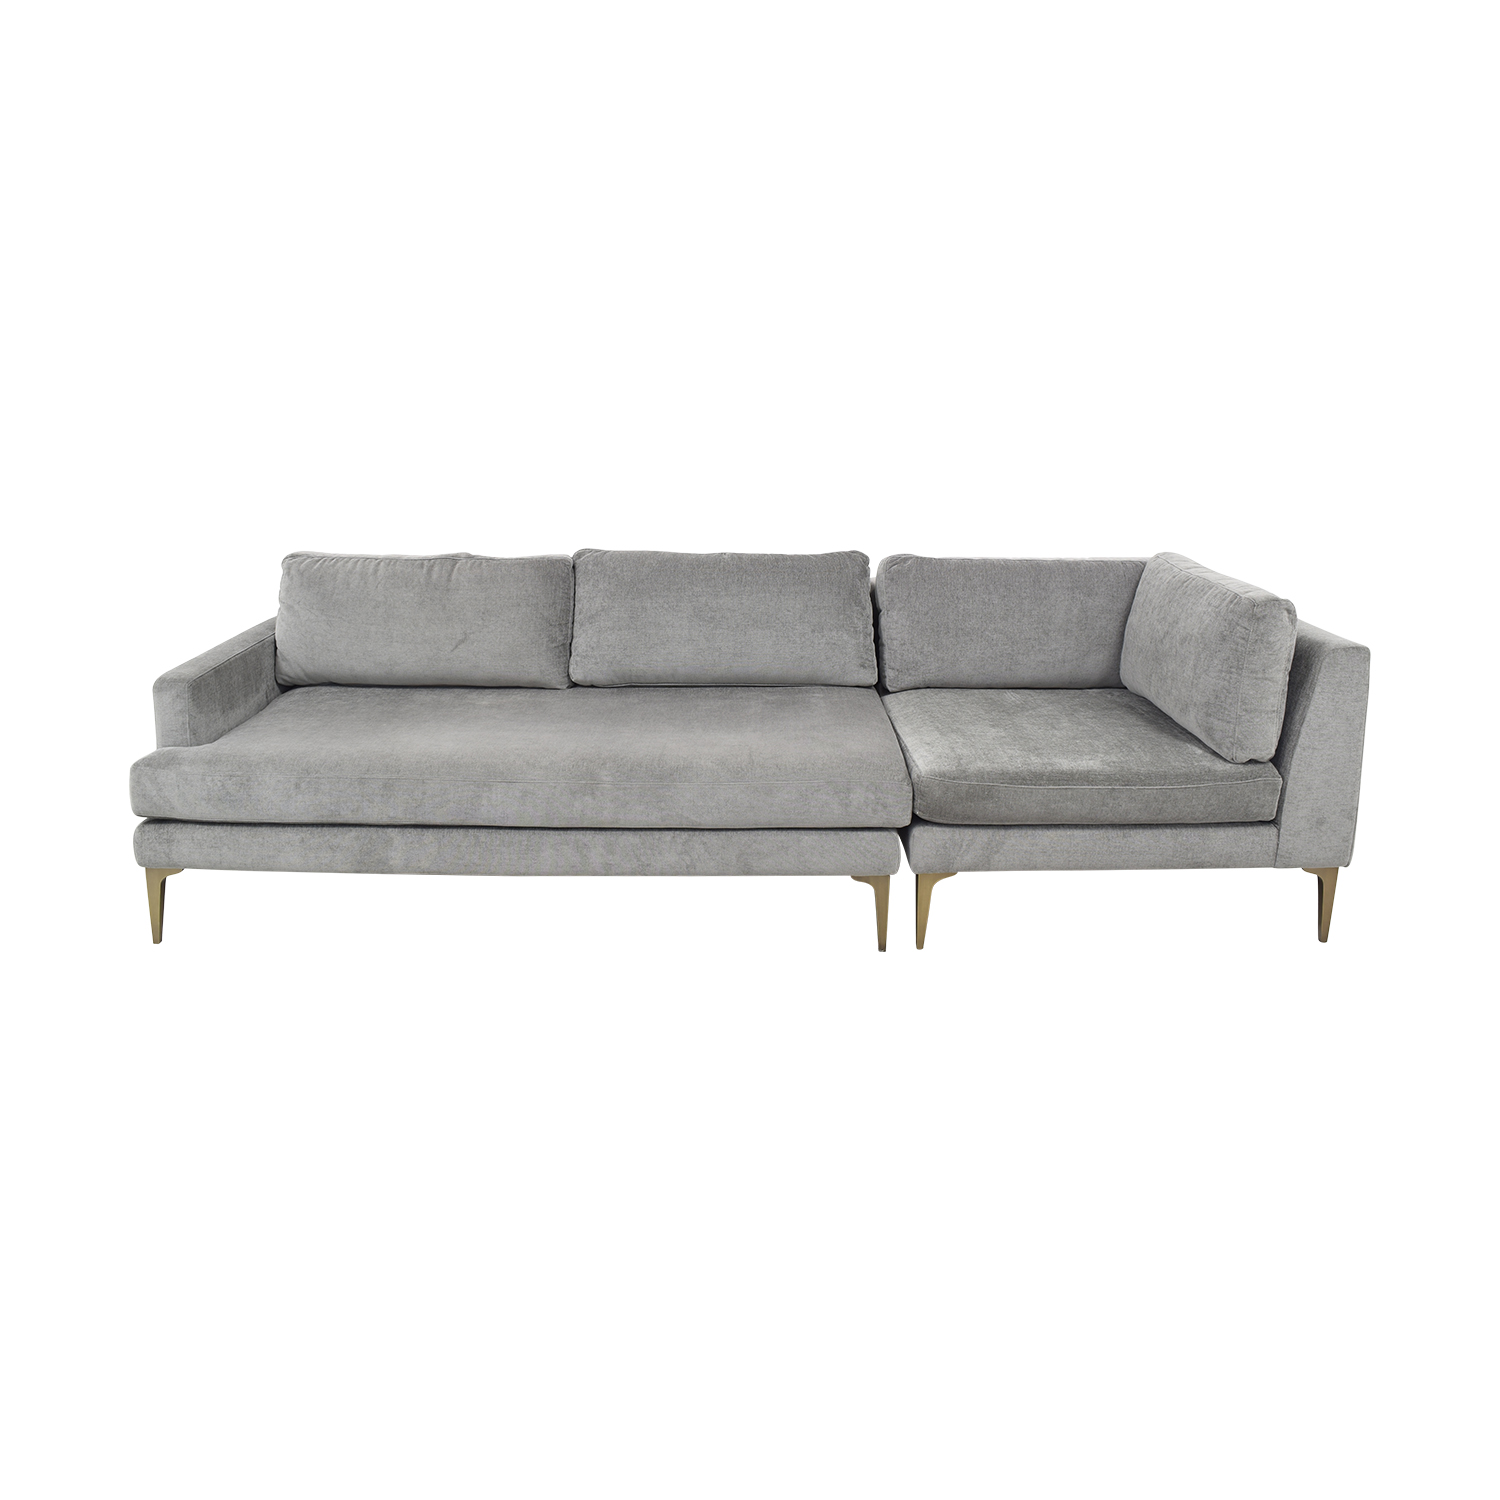 shop West Elm Andes Modular Sofa West Elm Classic Sofas